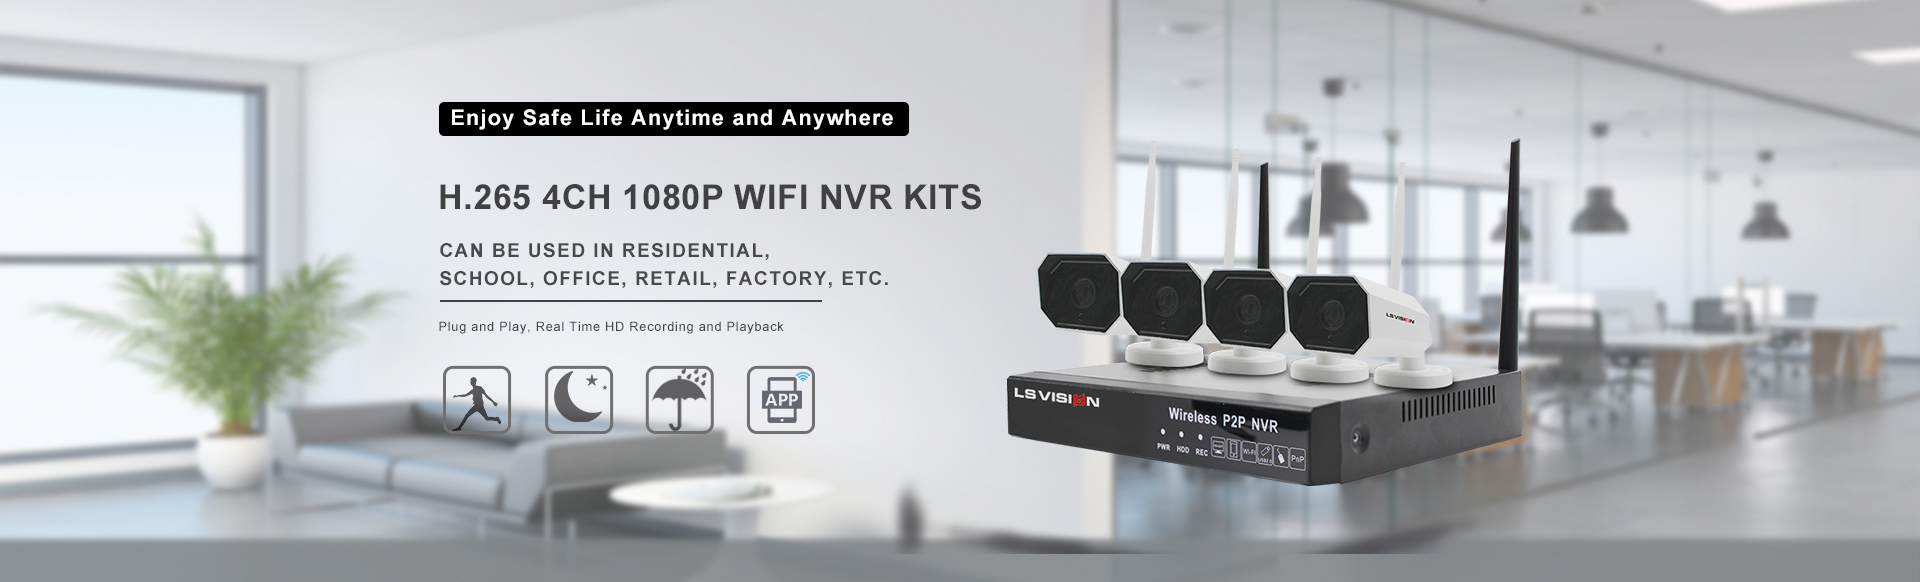 wifi nvr kits-www.lishigroup.com